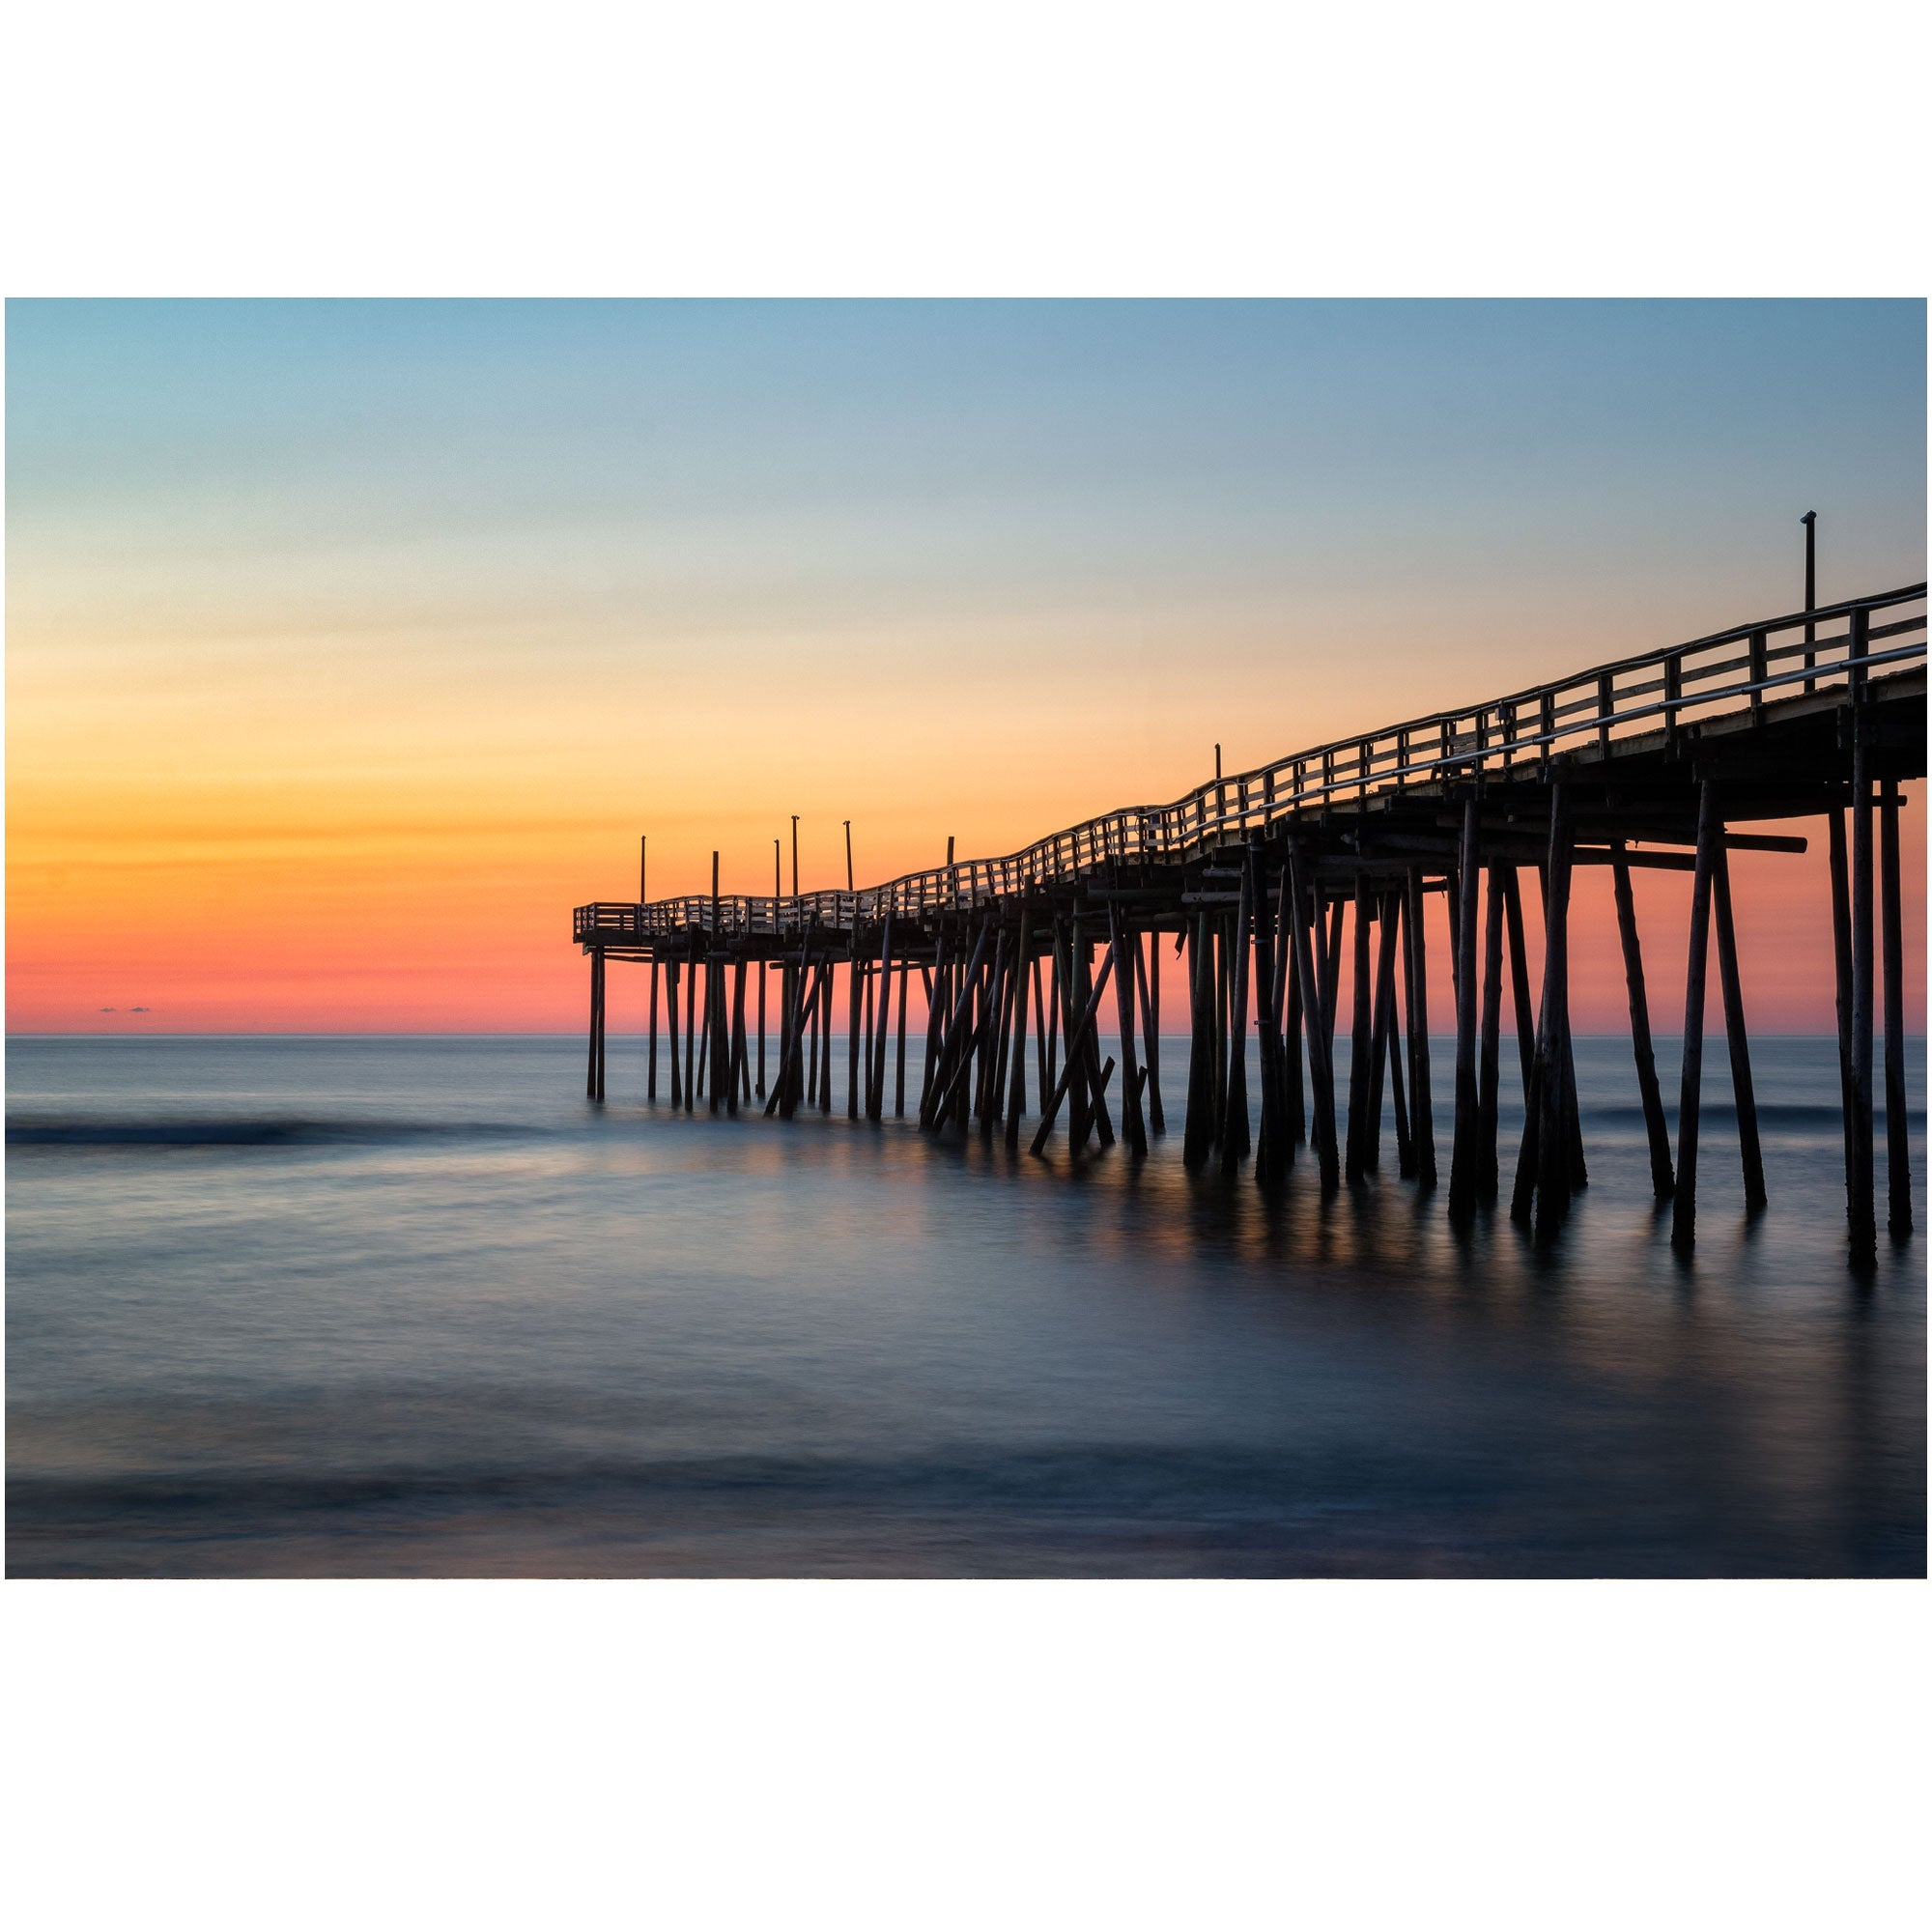 daybreak at avon pier in the outer banks of north carolina